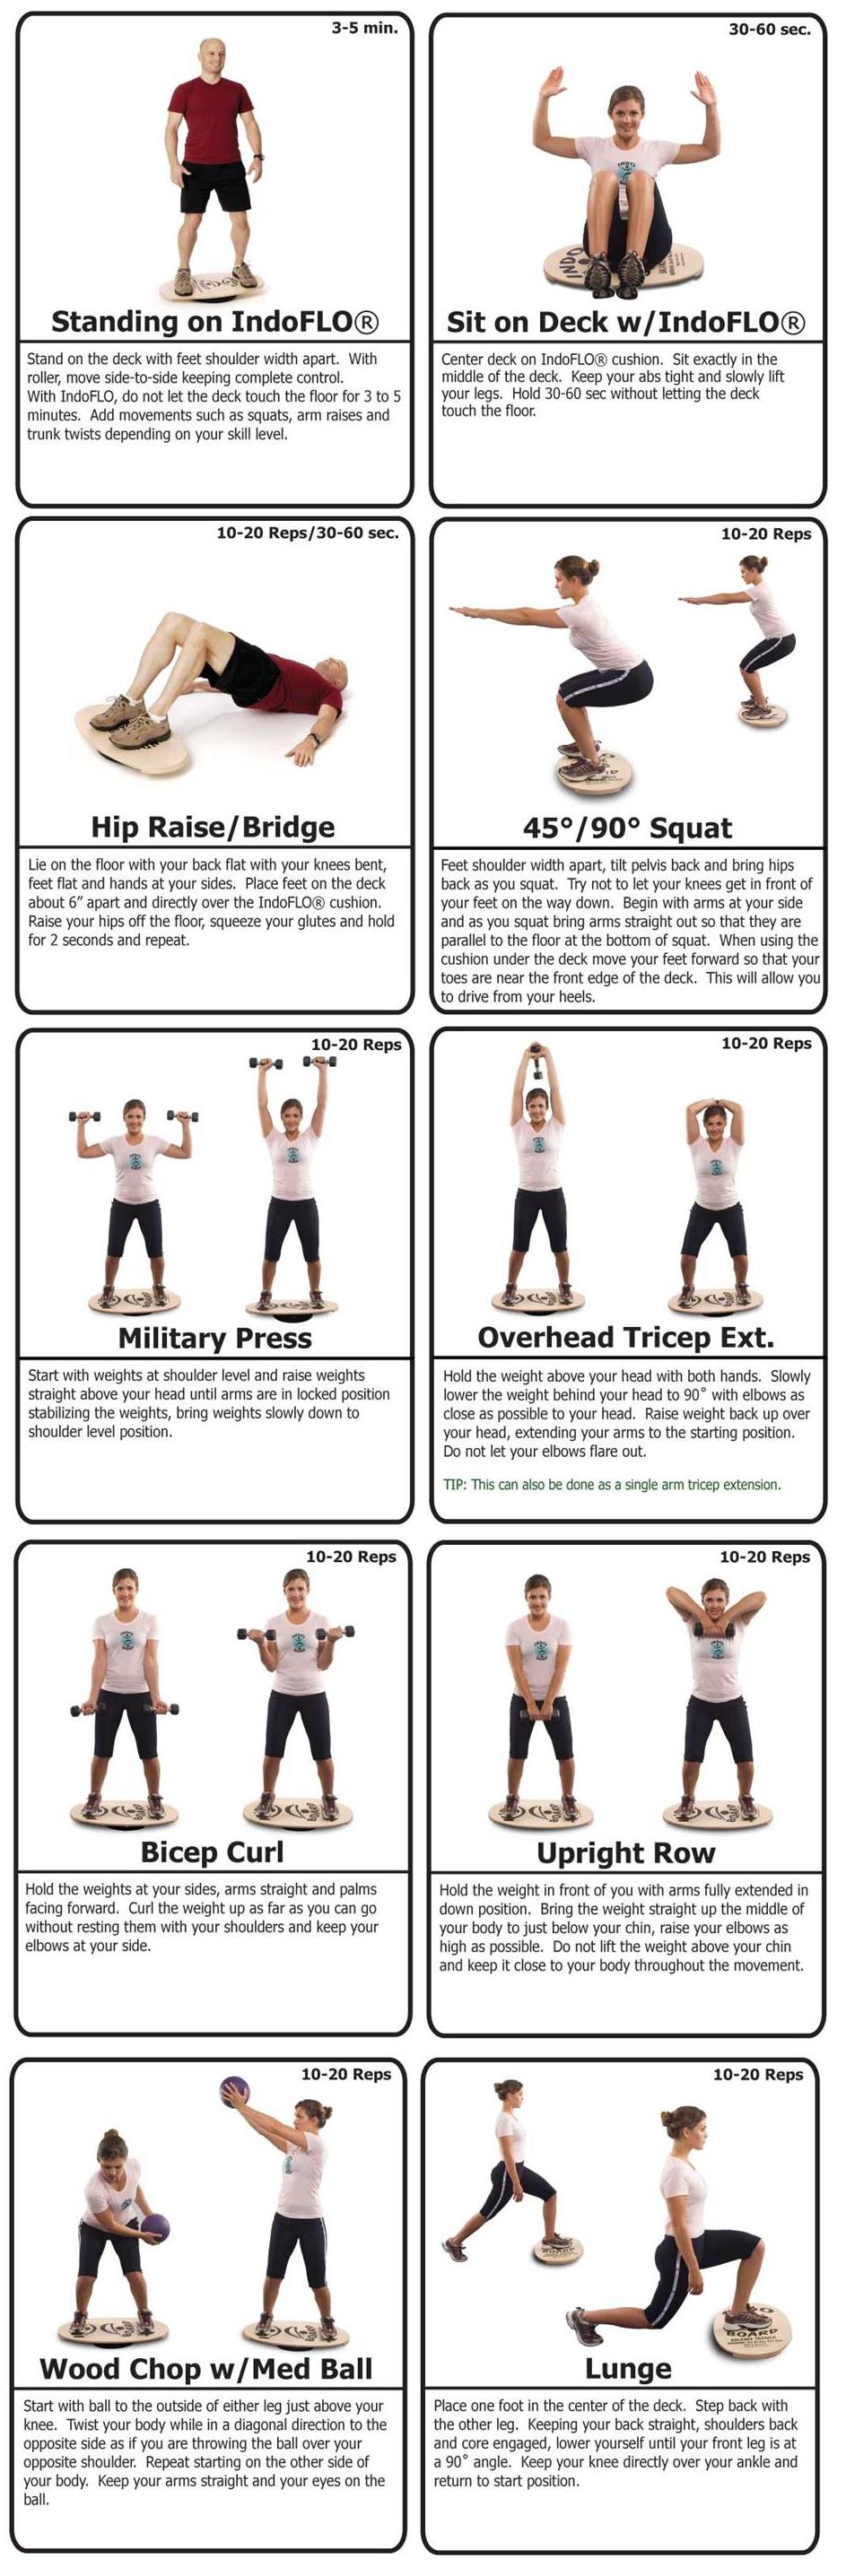 FLO exercises